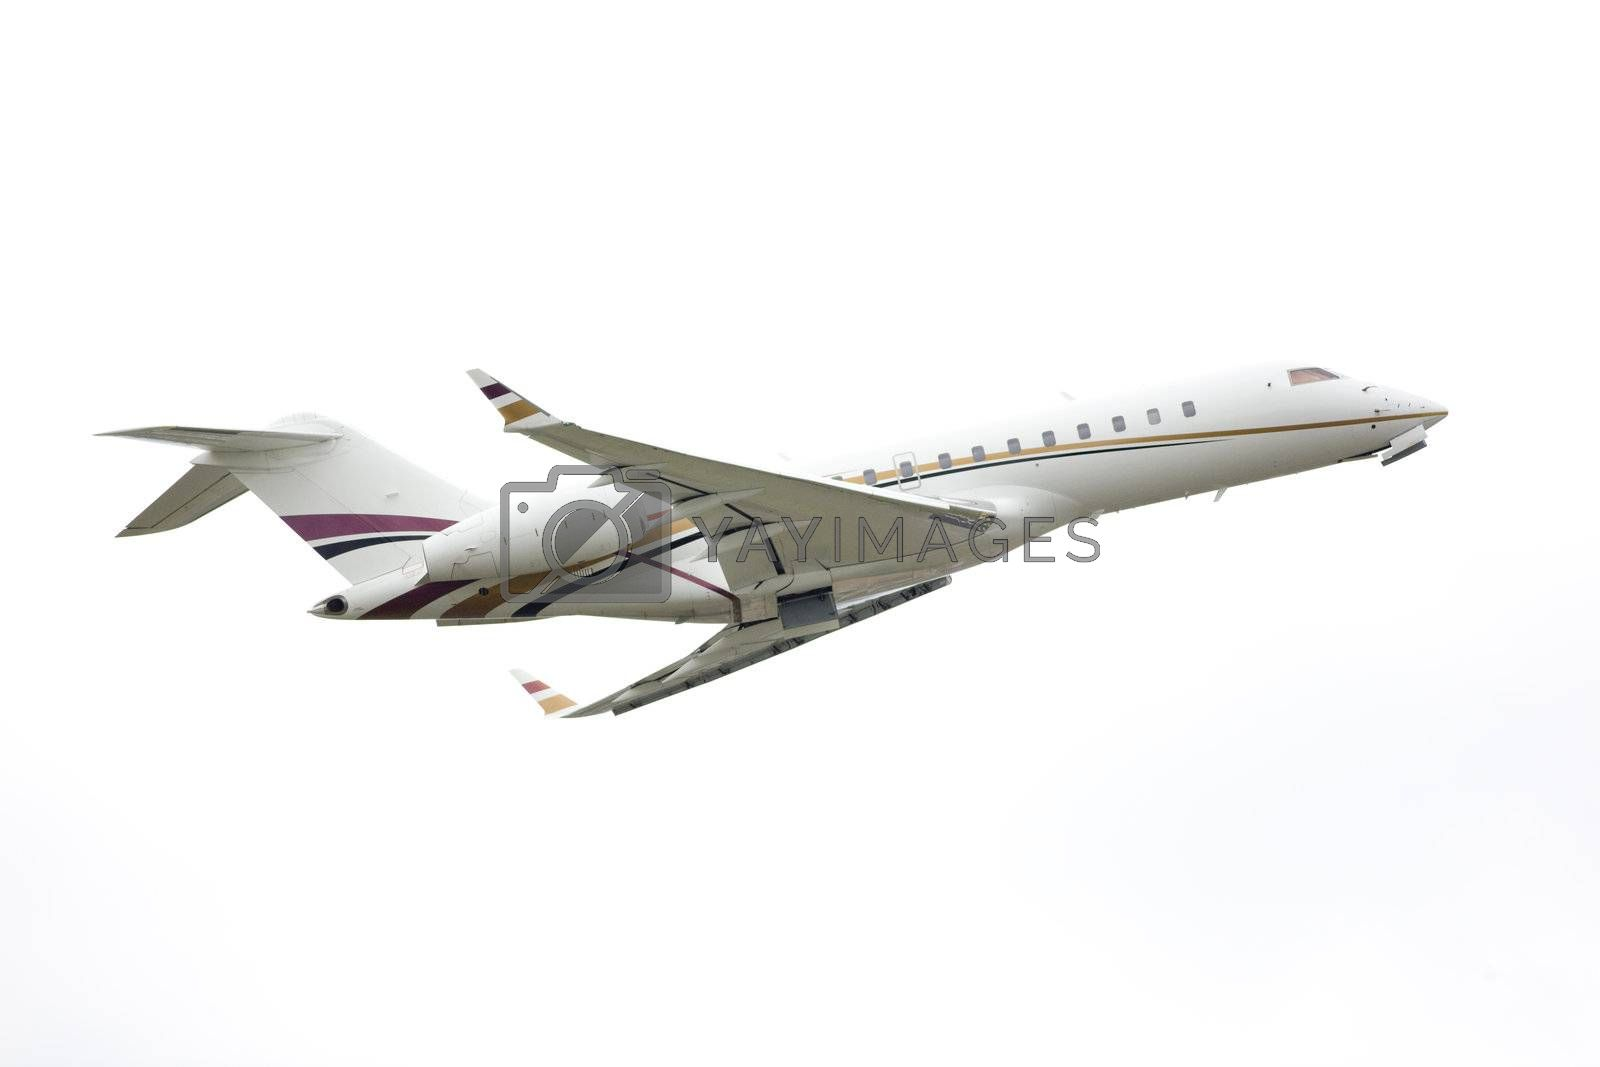 passenger airplane in a business transportation image isolated over a withe background